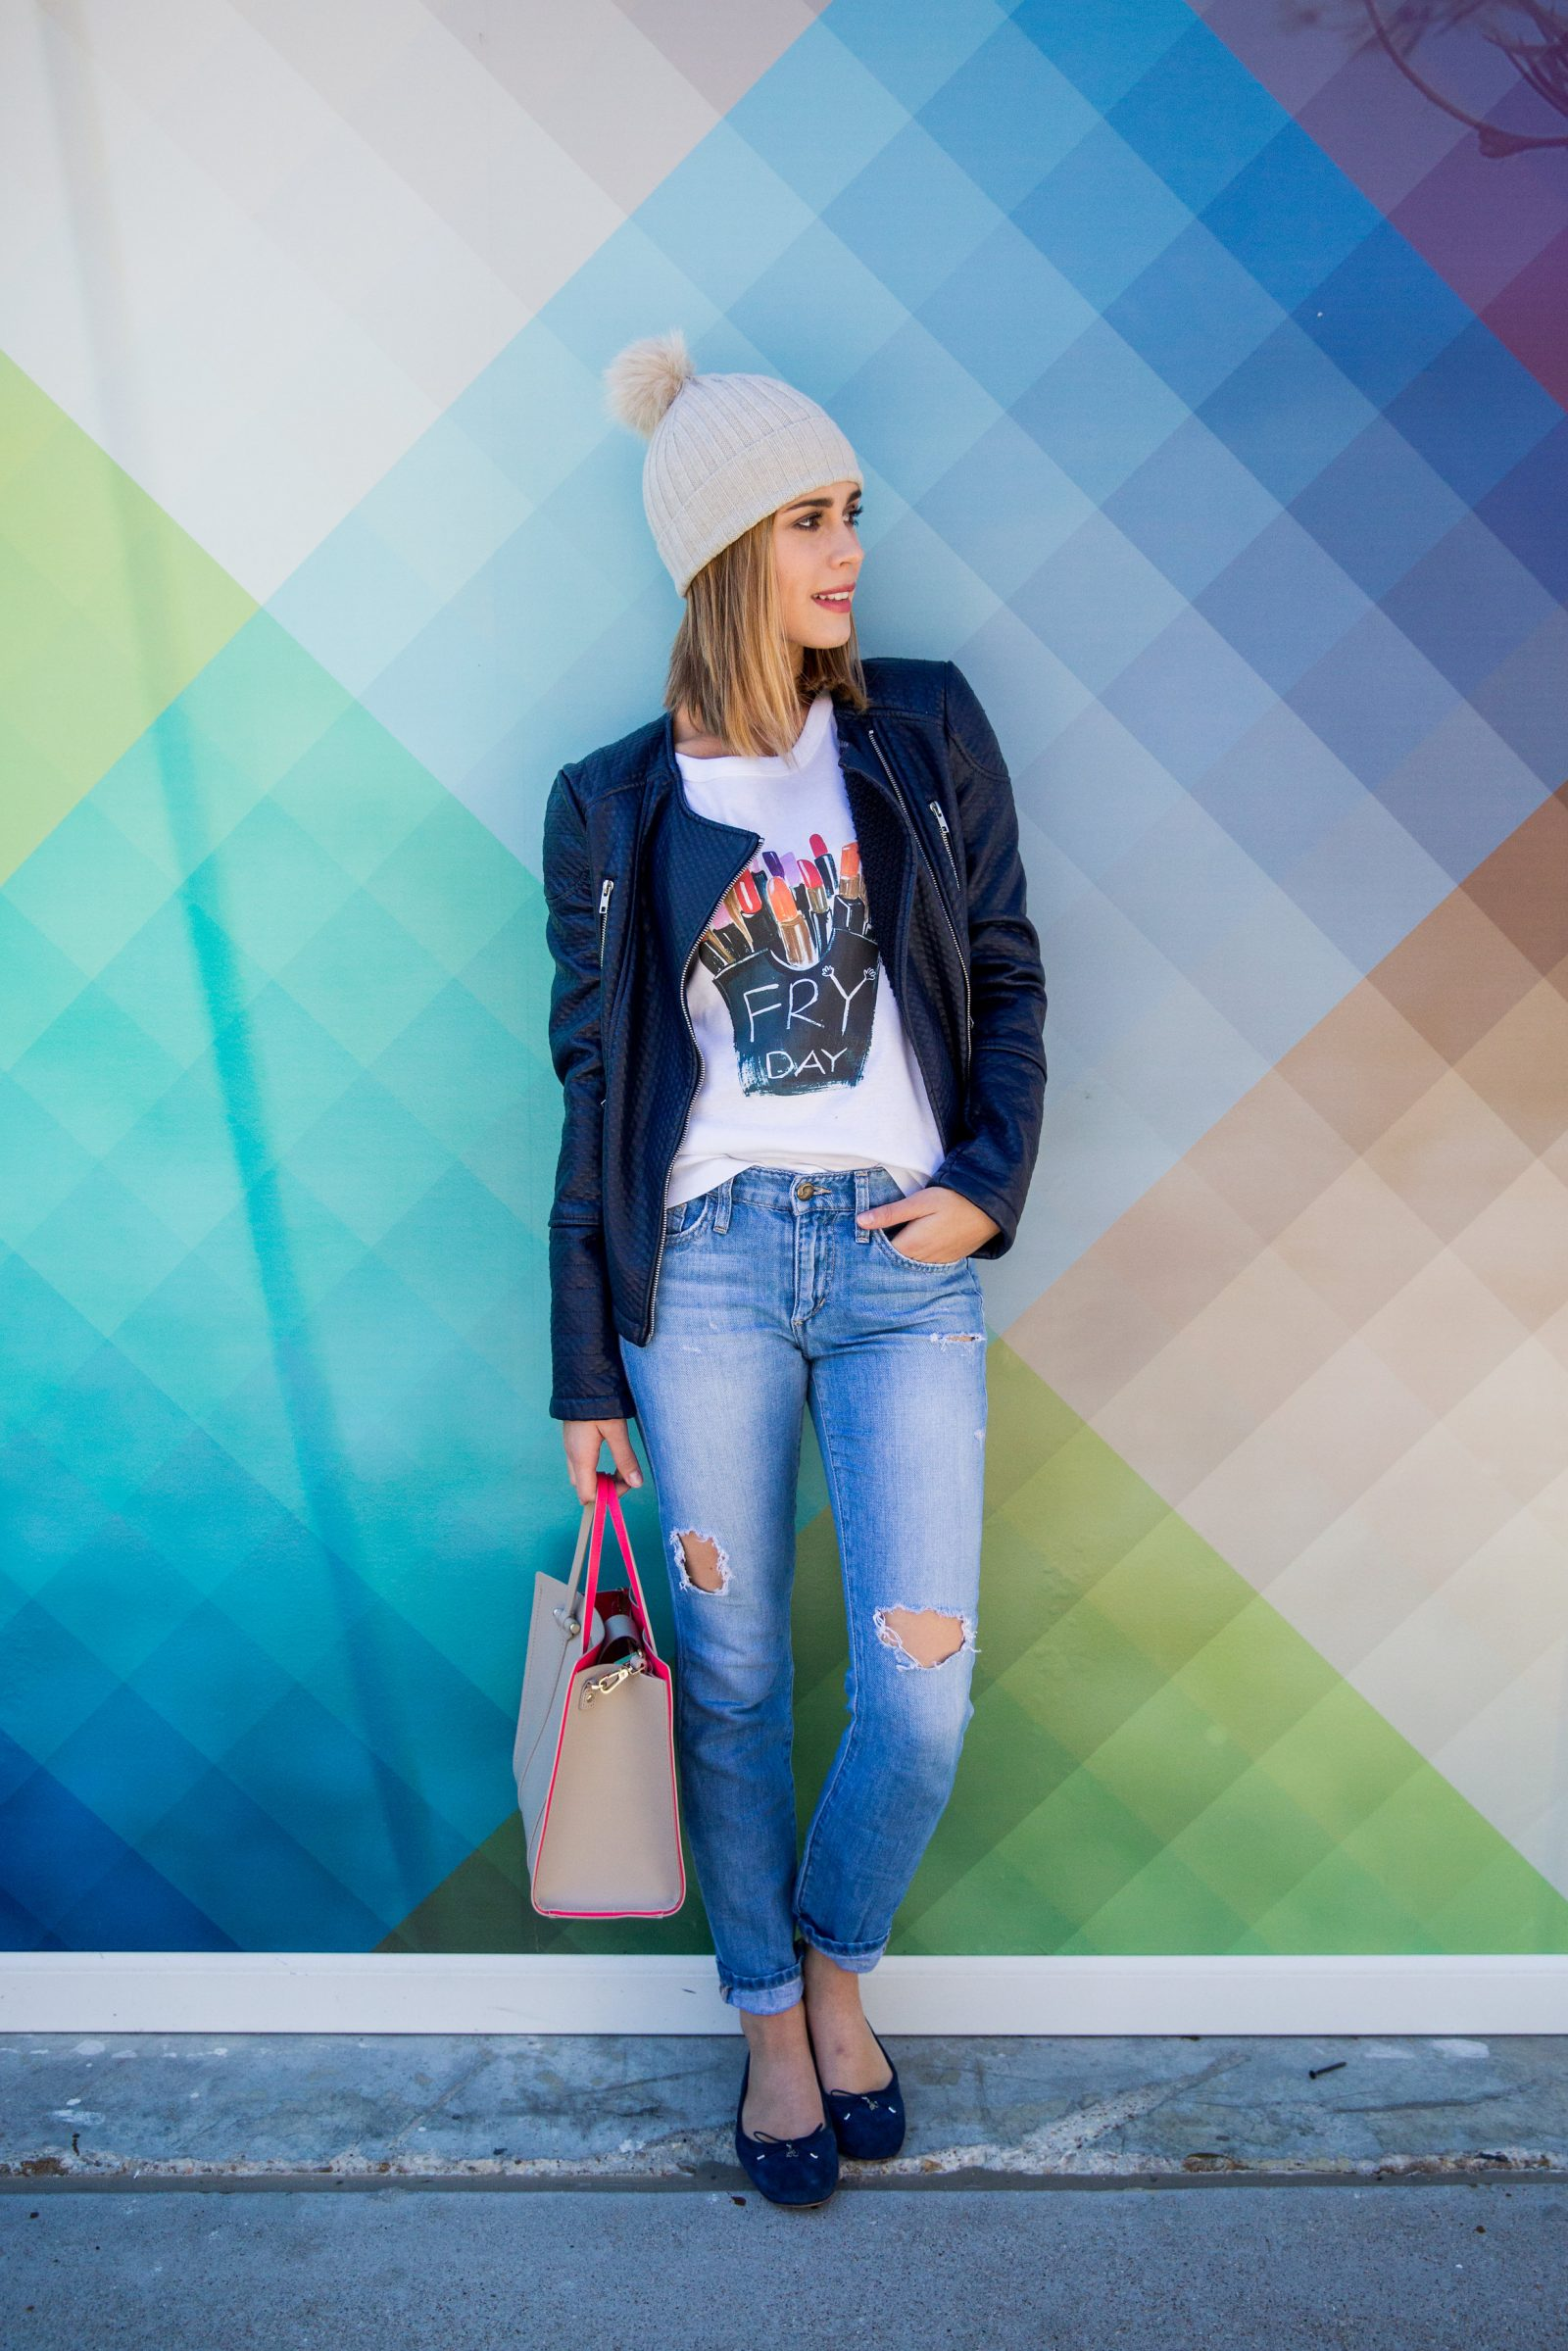 Houston fashion blogger Elly brown wears a FRYday graphic tee with distressed denim